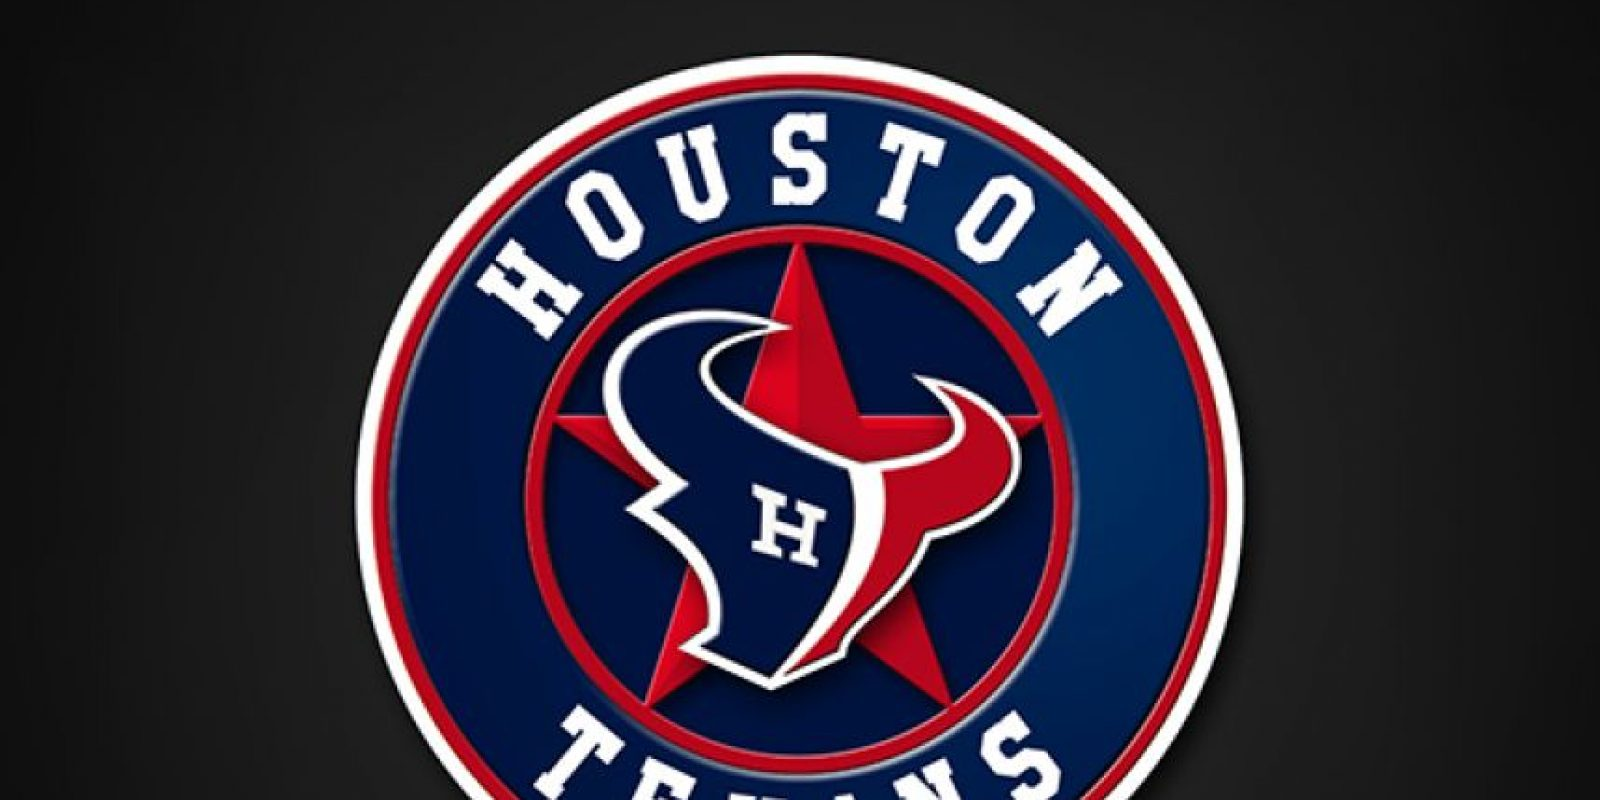 Houston Texans y Houston Astros Foto: DailySnark